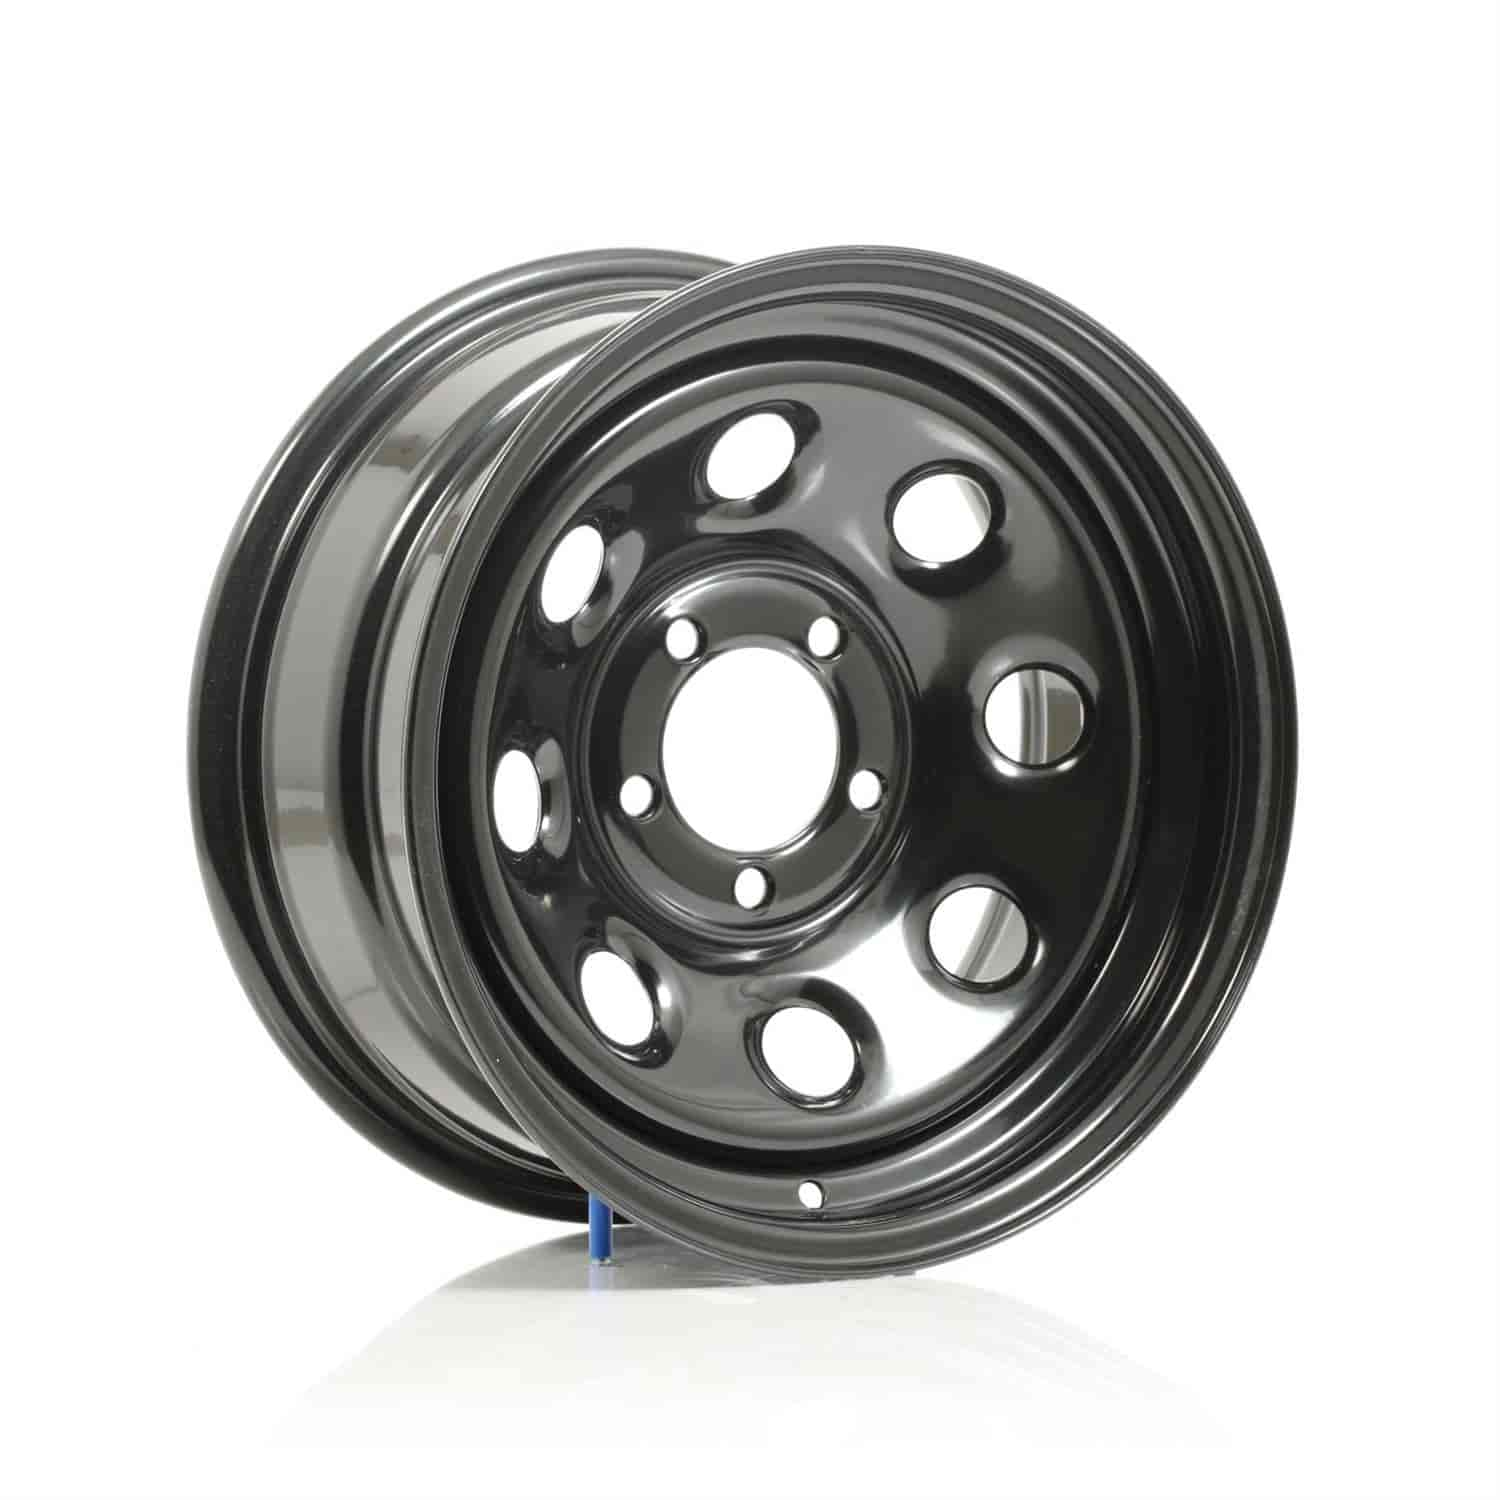 Cragar 3977781 - Cragar Black Soft 8 Wheels